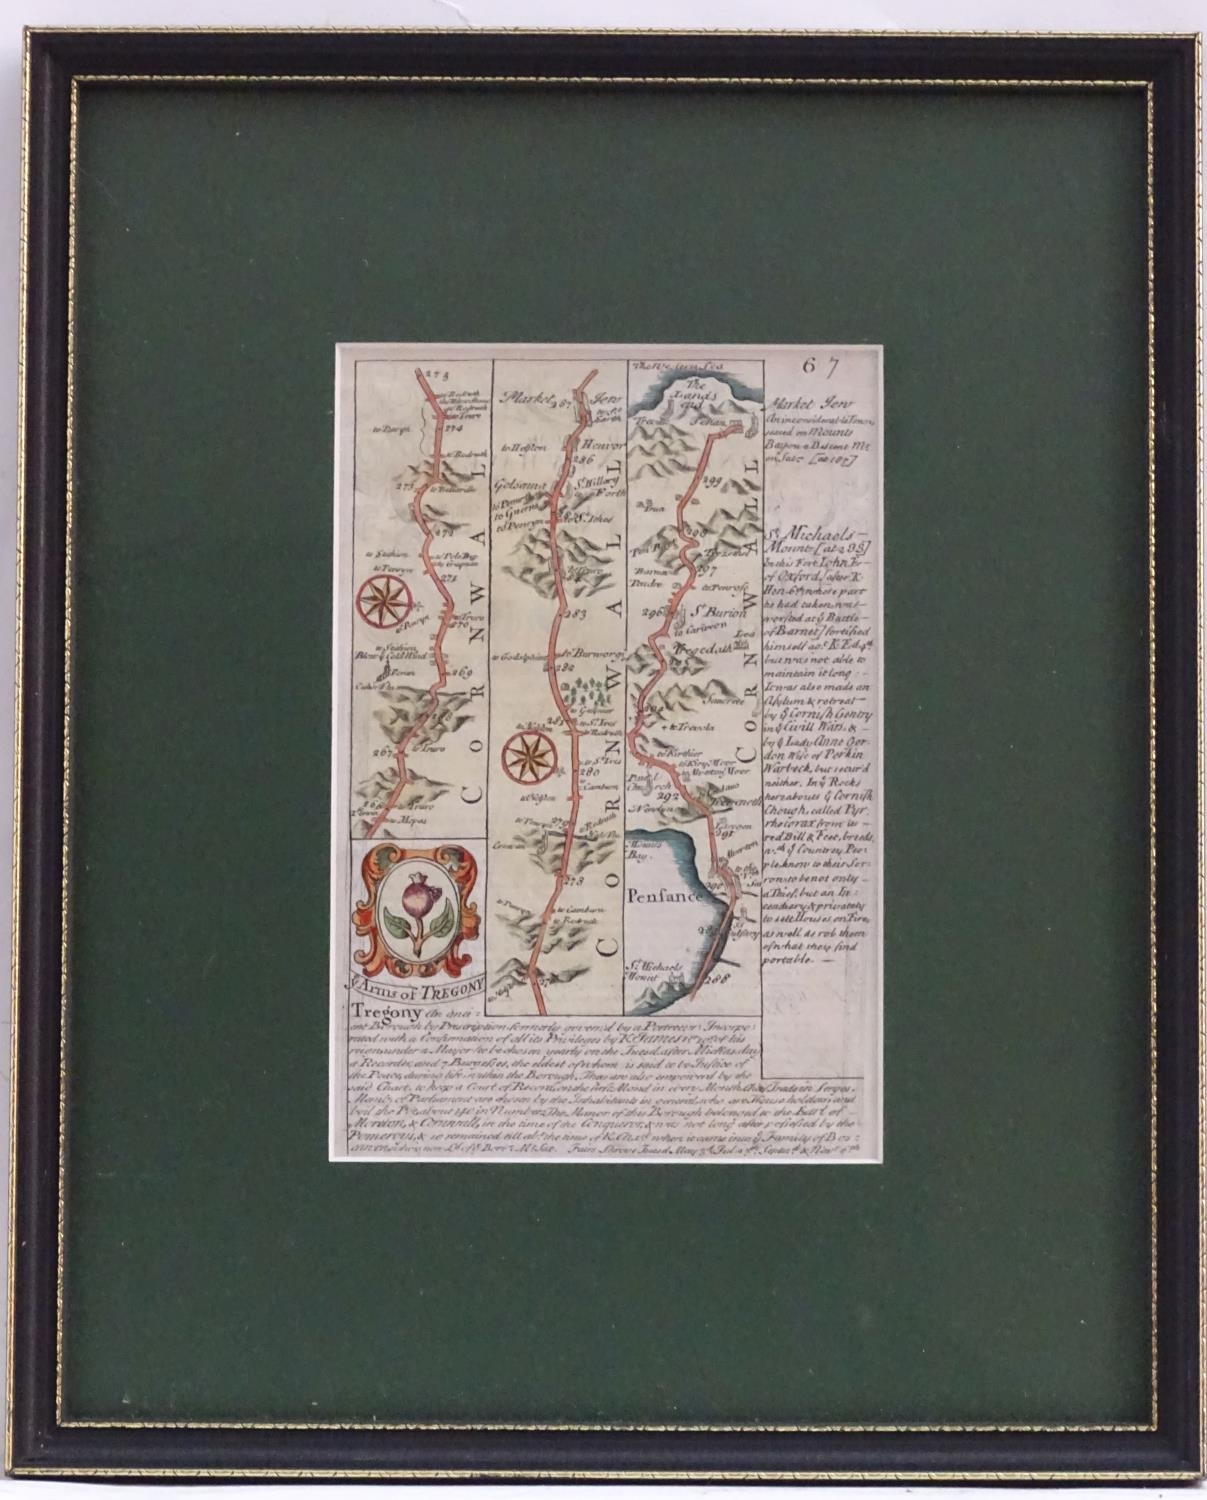 Map: An 18thC hand coloured engraved road strip map of Cornwall, showing the route from Tregony to